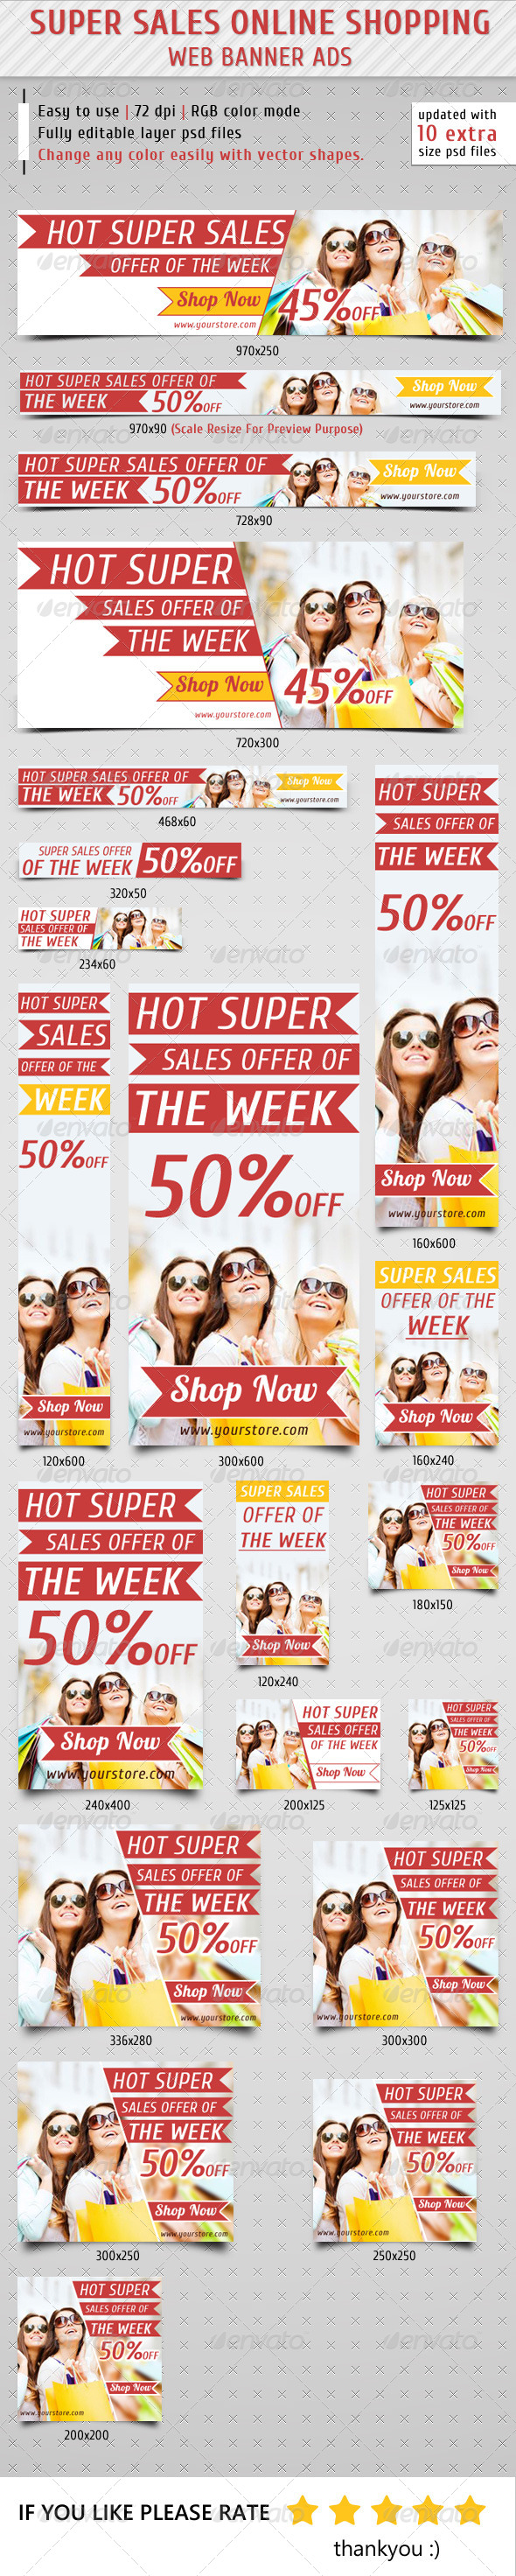 Super Sales Online Shopping Banner Ads - Banners & Ads Web Elements